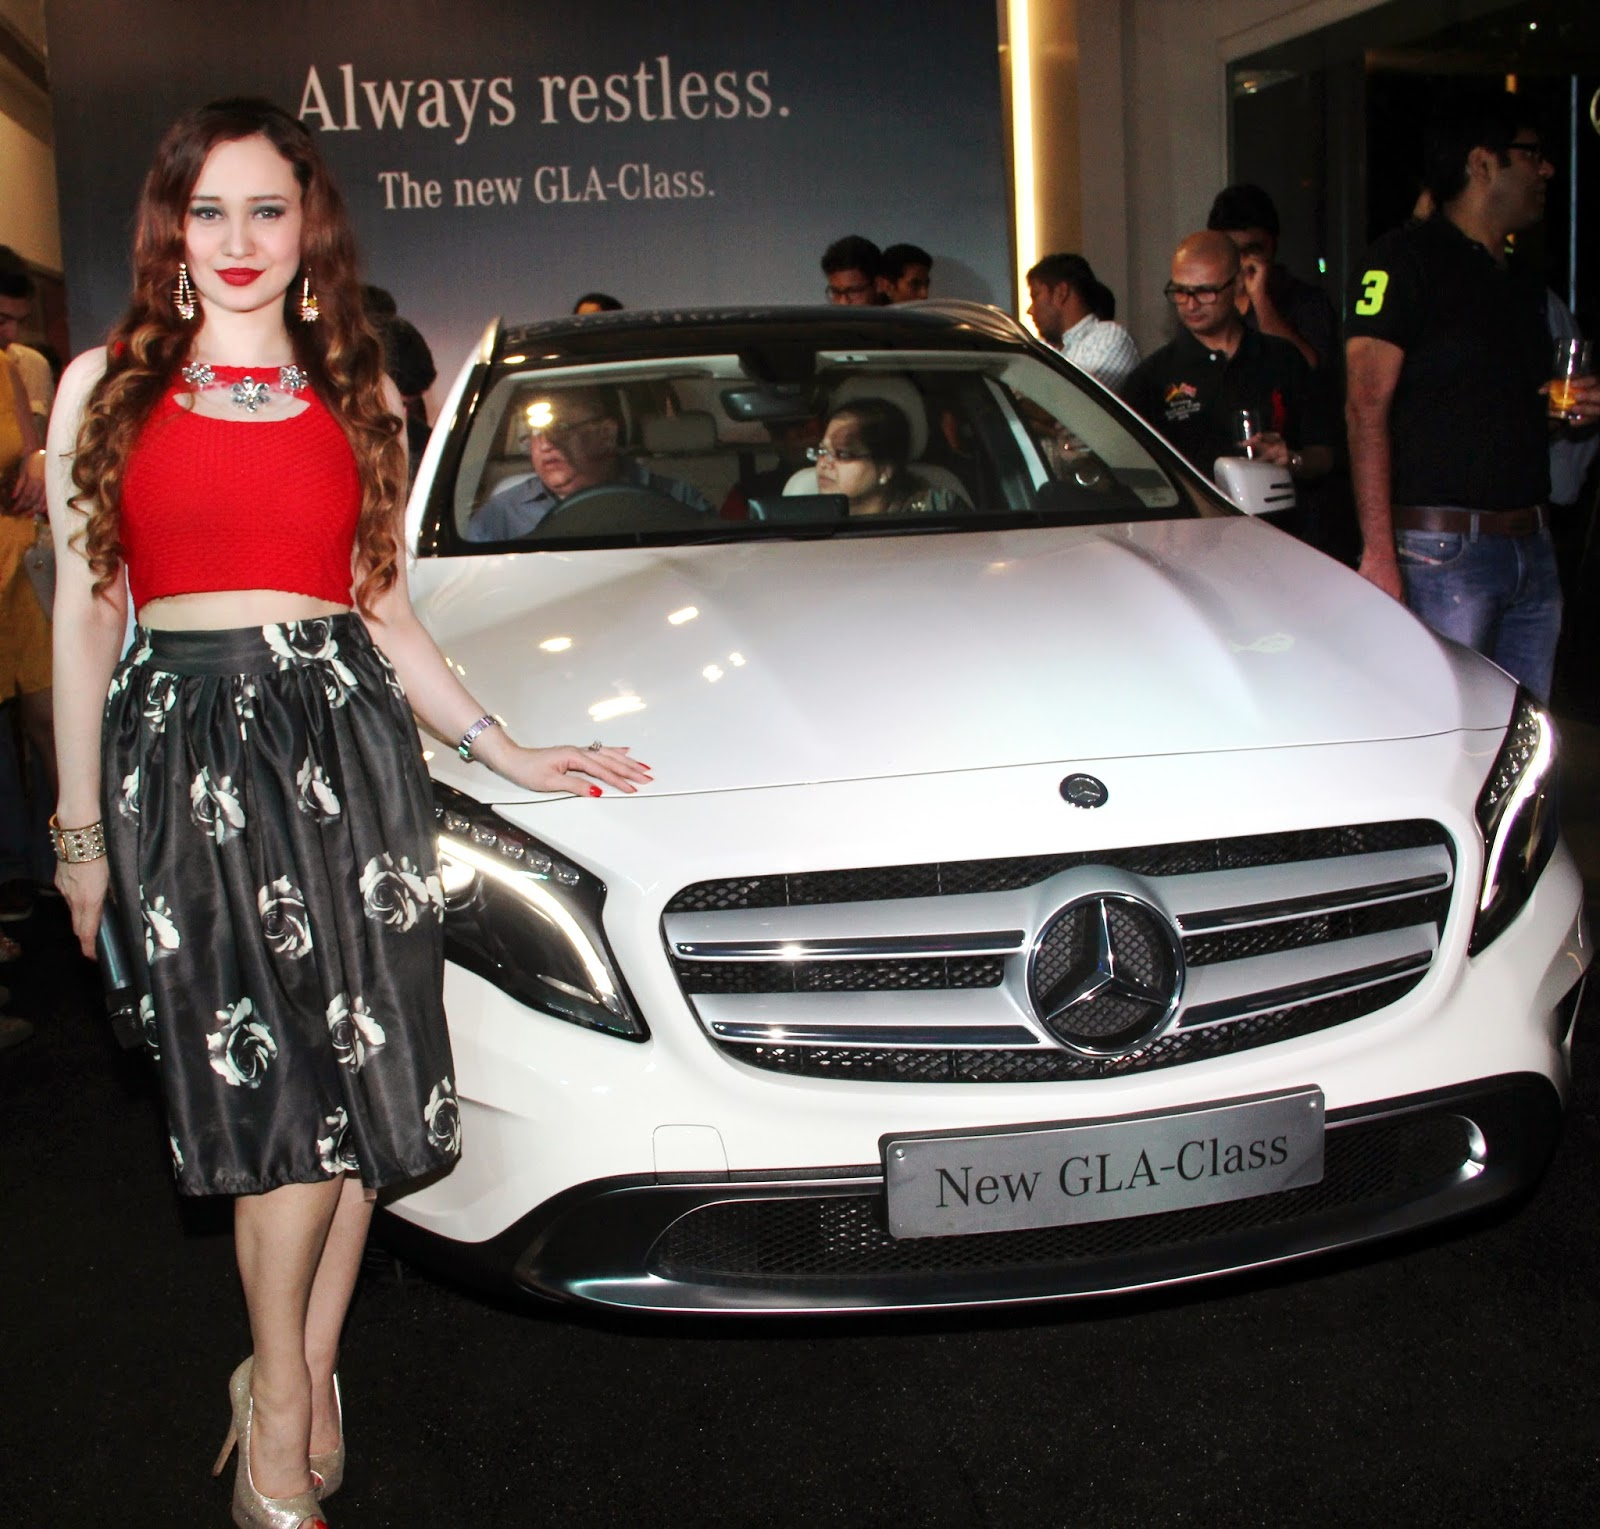 Stephanie Timmins posing with the Mercedes-Benz GLA-Class